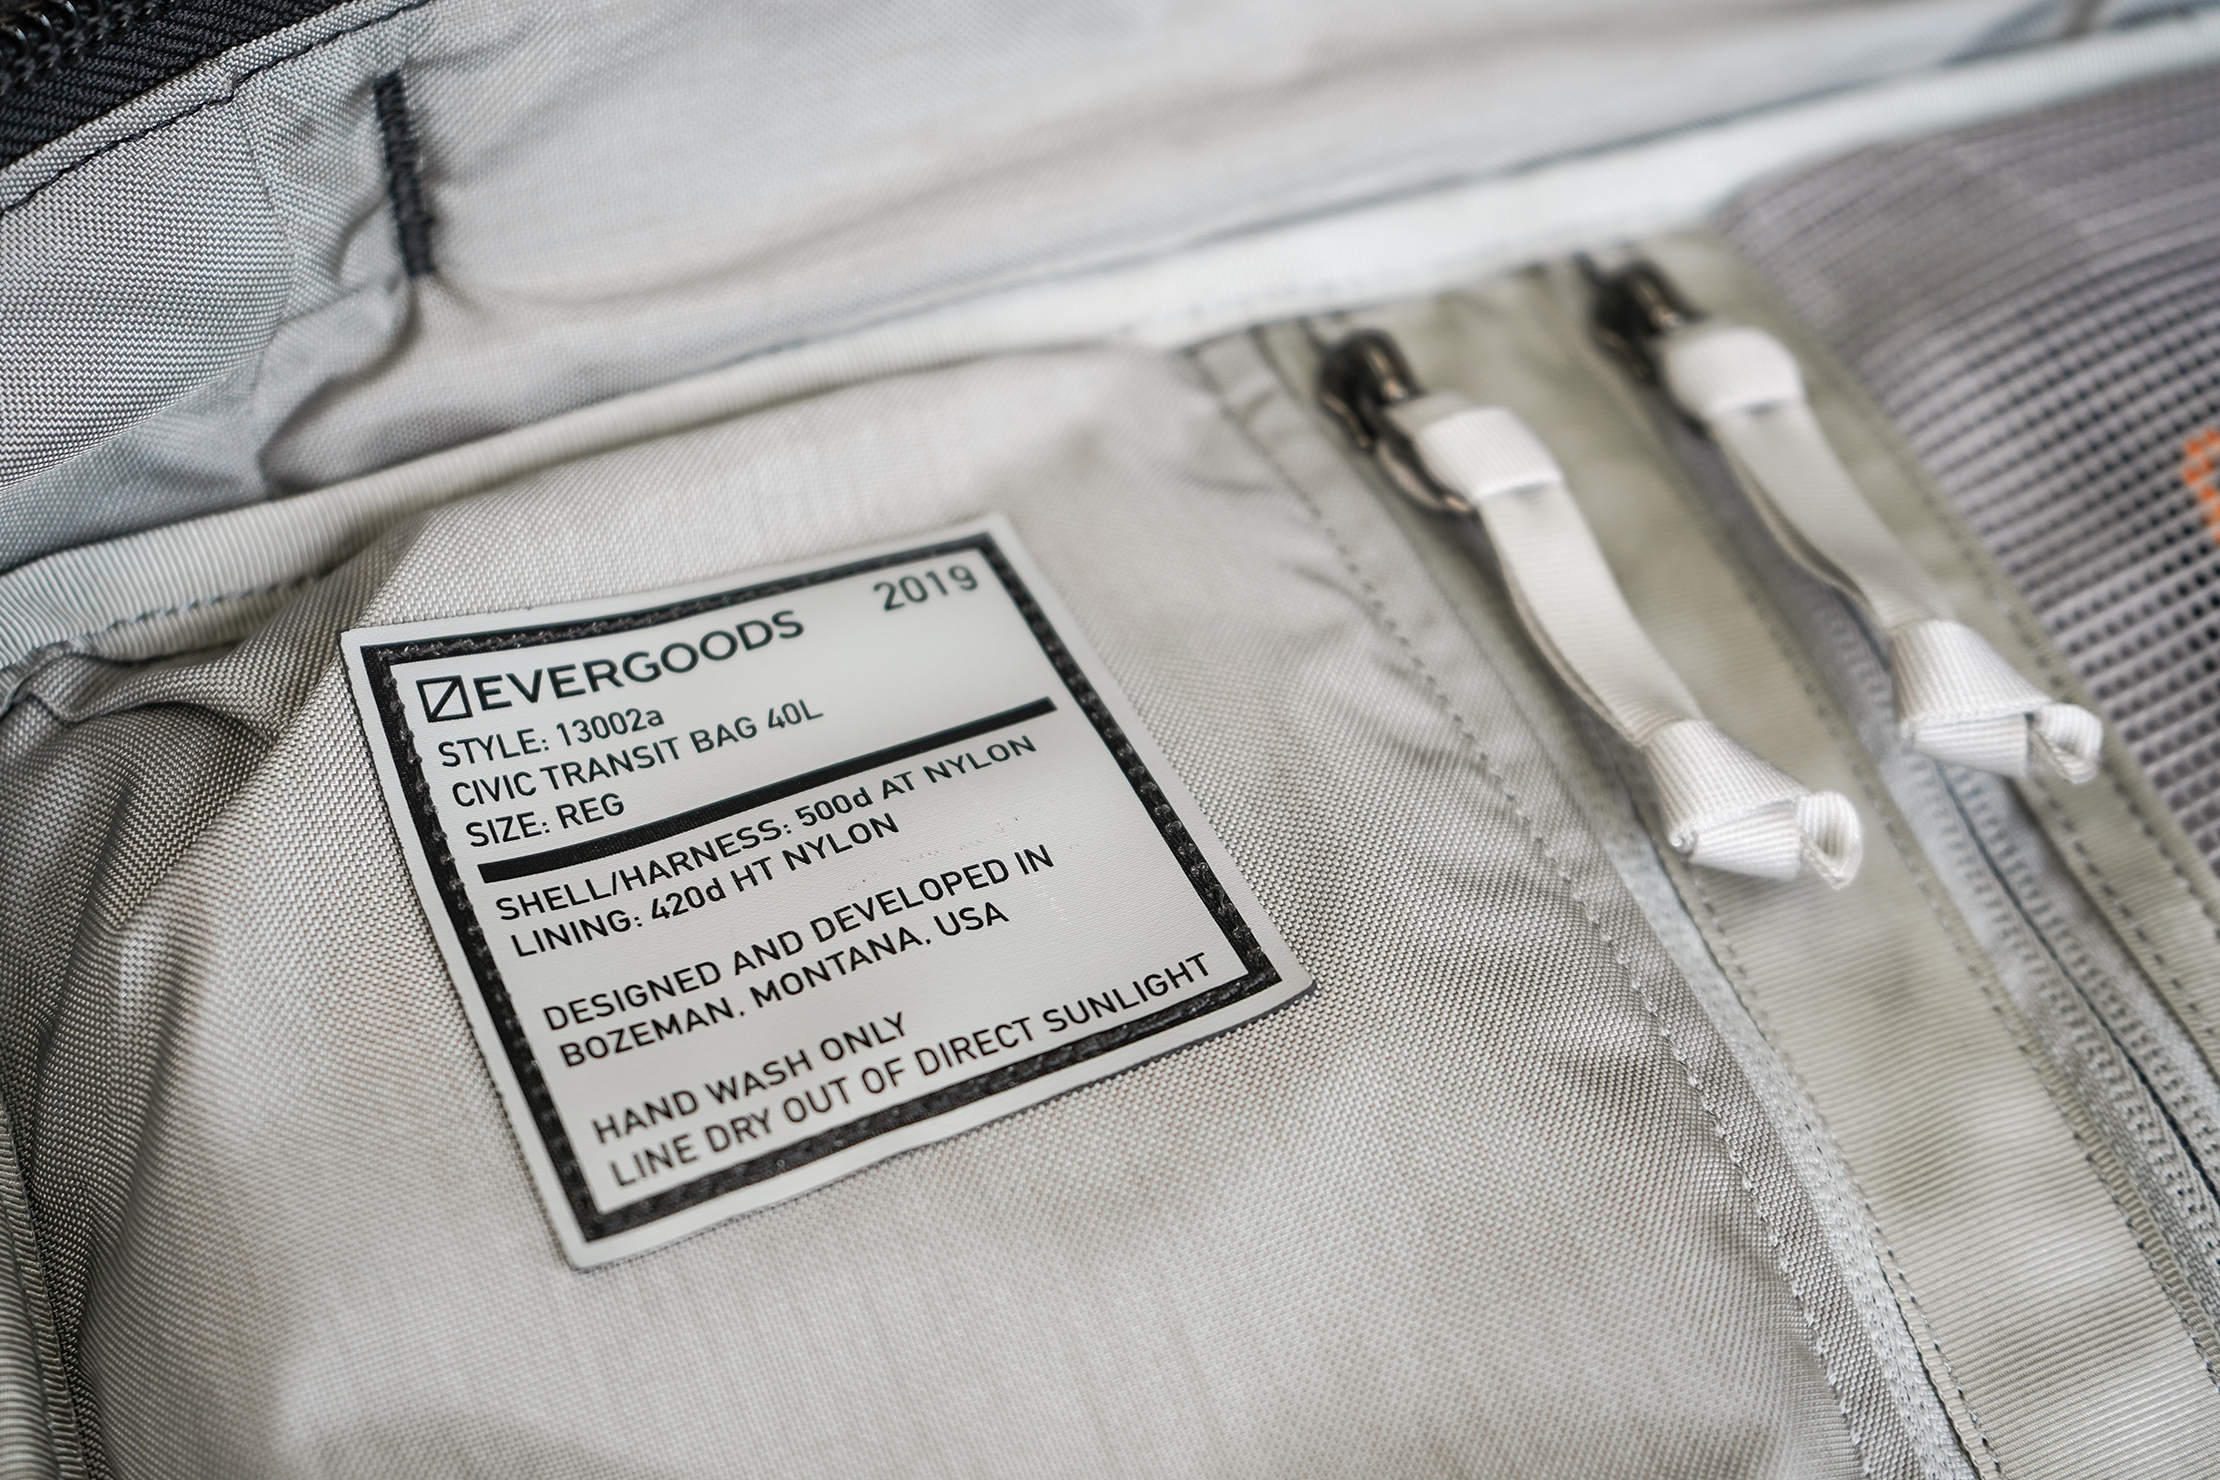 EVERGOODS CTB40 Information Tag